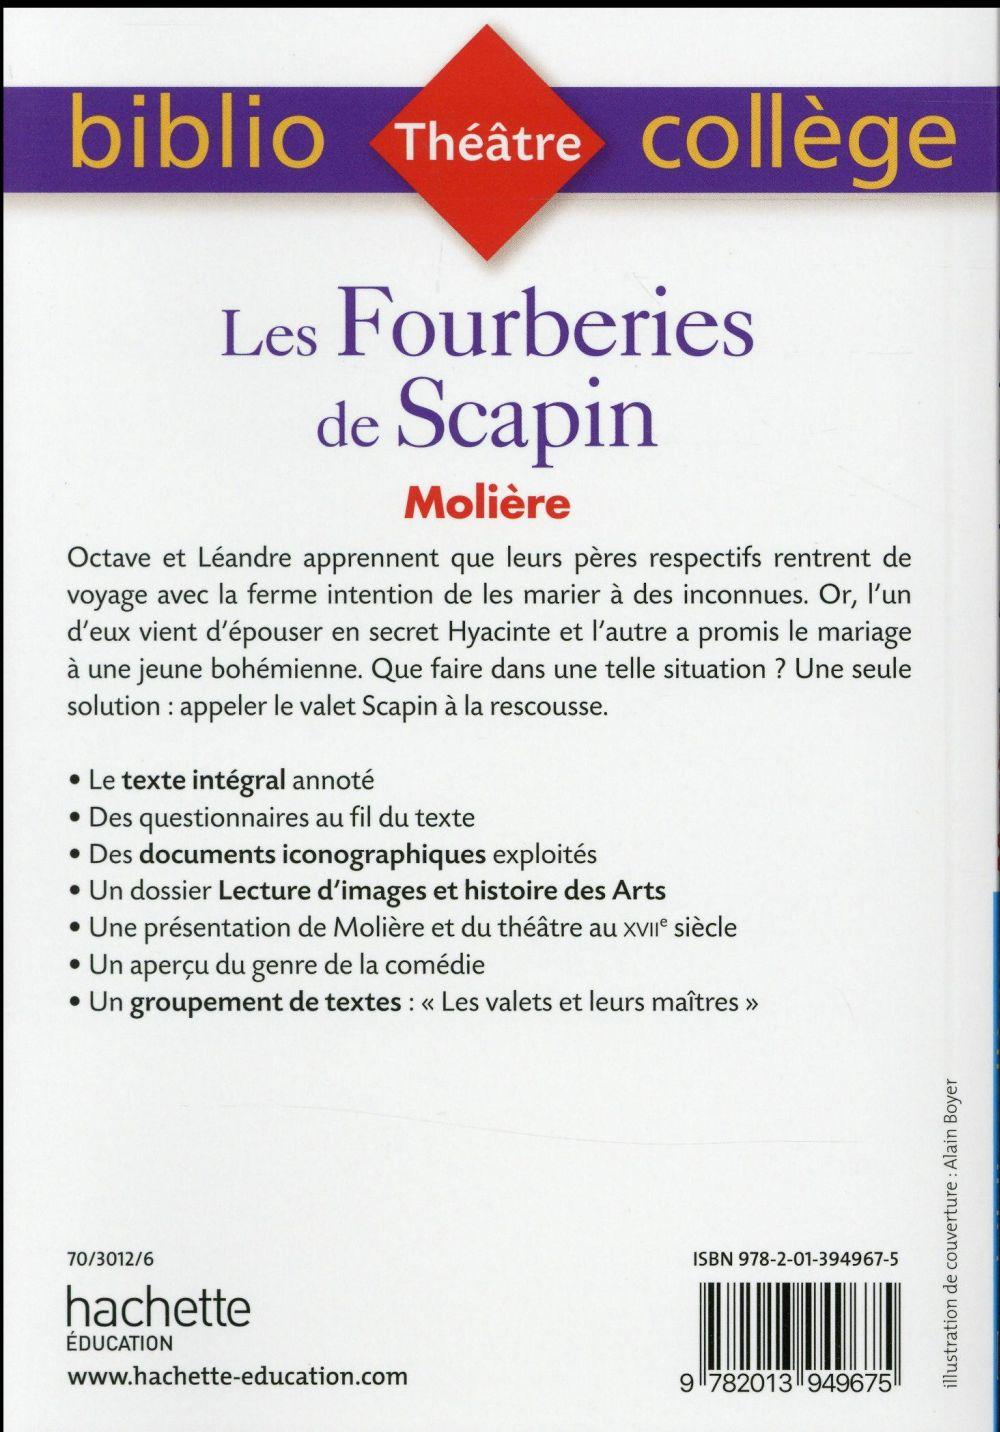 resume fourberies de scapin